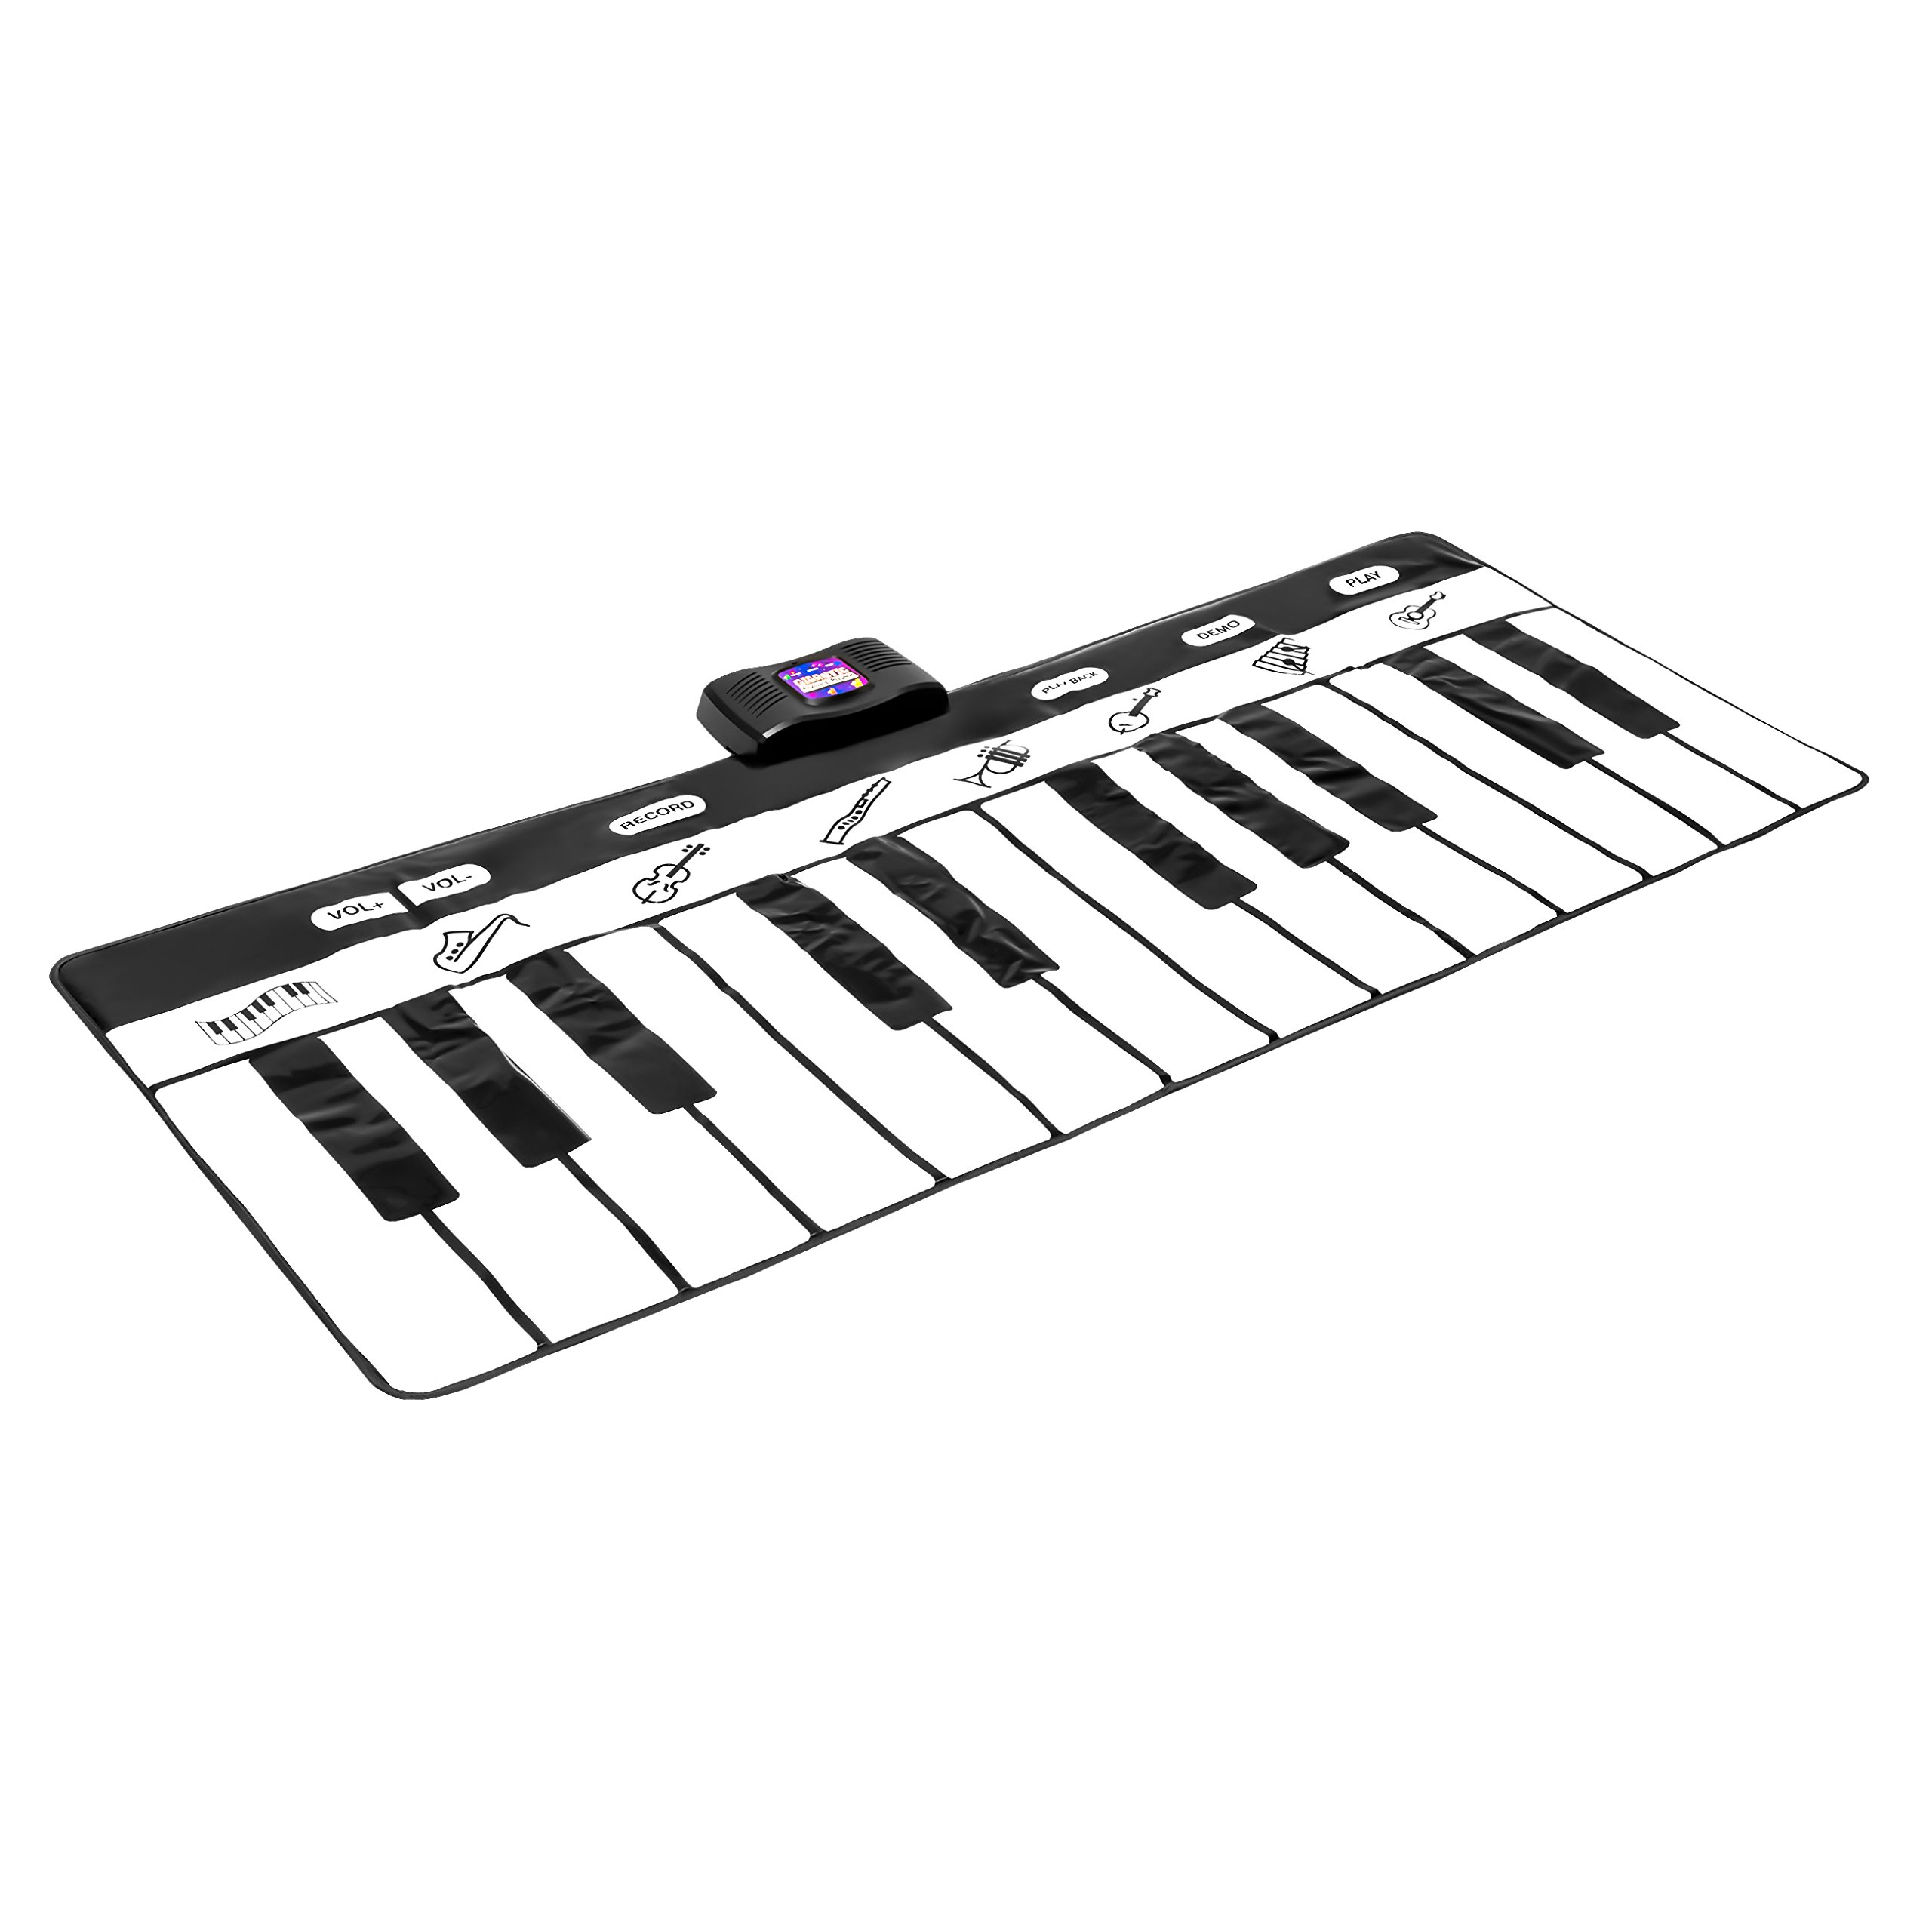 Best Choice Products 71-Inch Vinyl 24-Key Keyboard Playmat with 8 Settings and Recorder, Black/White by Best Choice Products (Image #3)